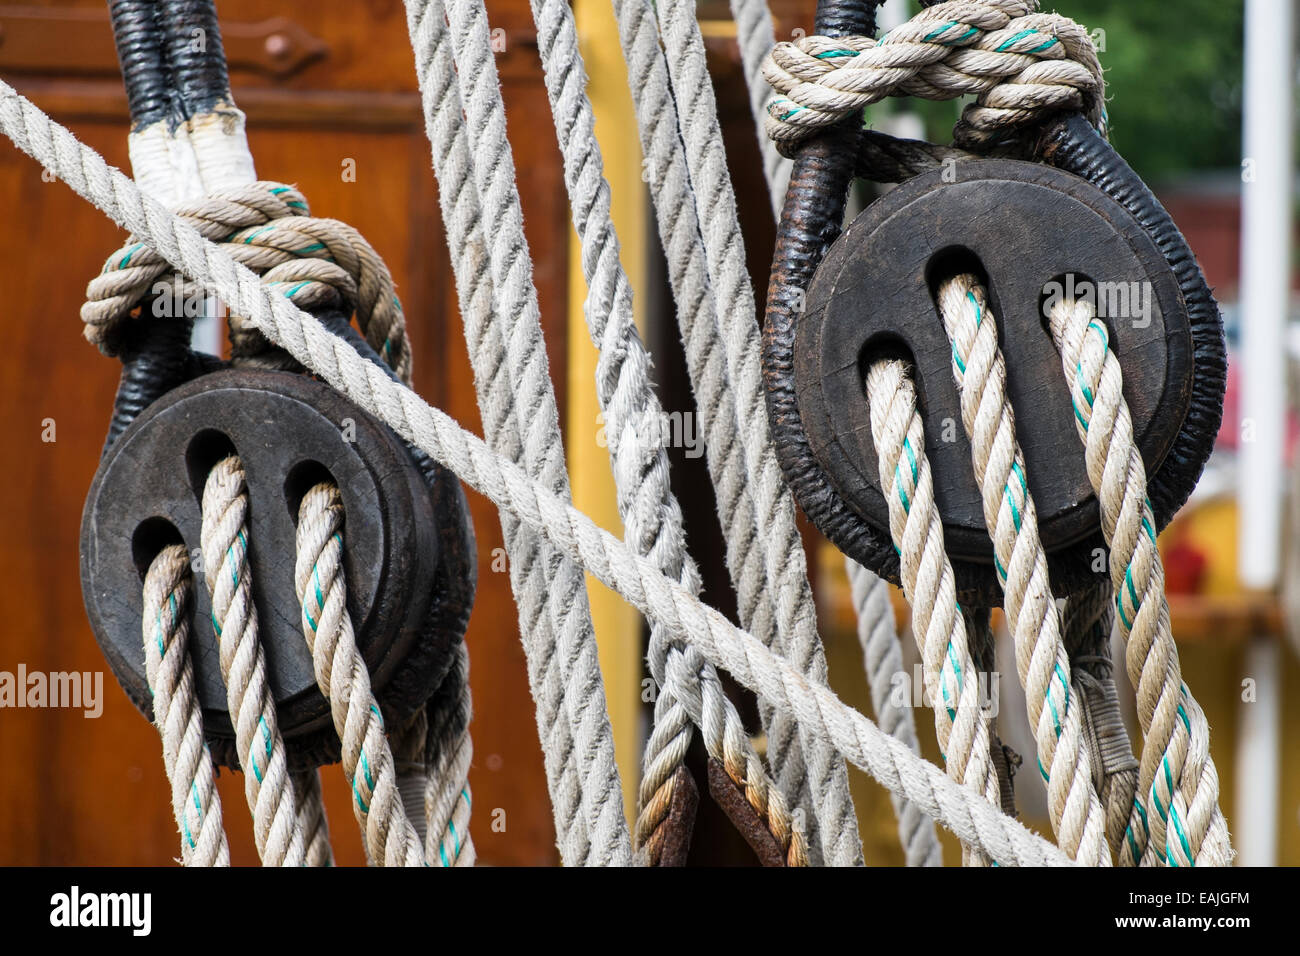 Ancient wooden sailboat deadeye and ropes detail - Stock Image